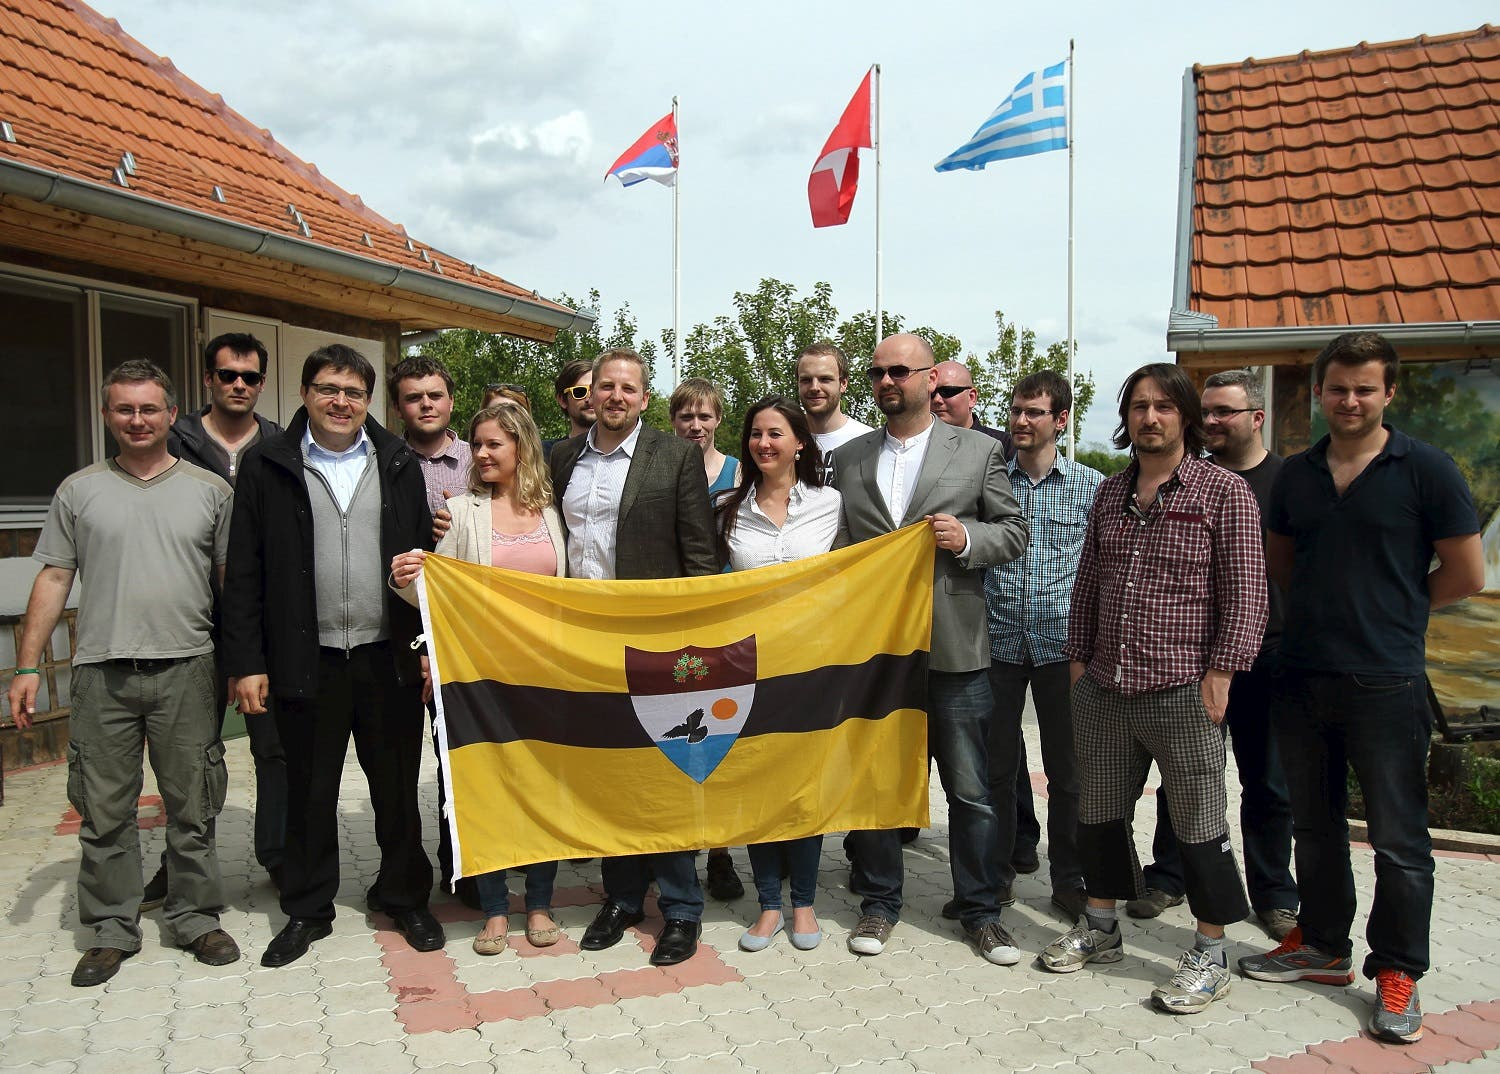 Vit Jedlicka (C) poses with the Liberland flag and future citizenships in the village of Backi Monostor, Serbia, on May 1, 2015. (Reuters)